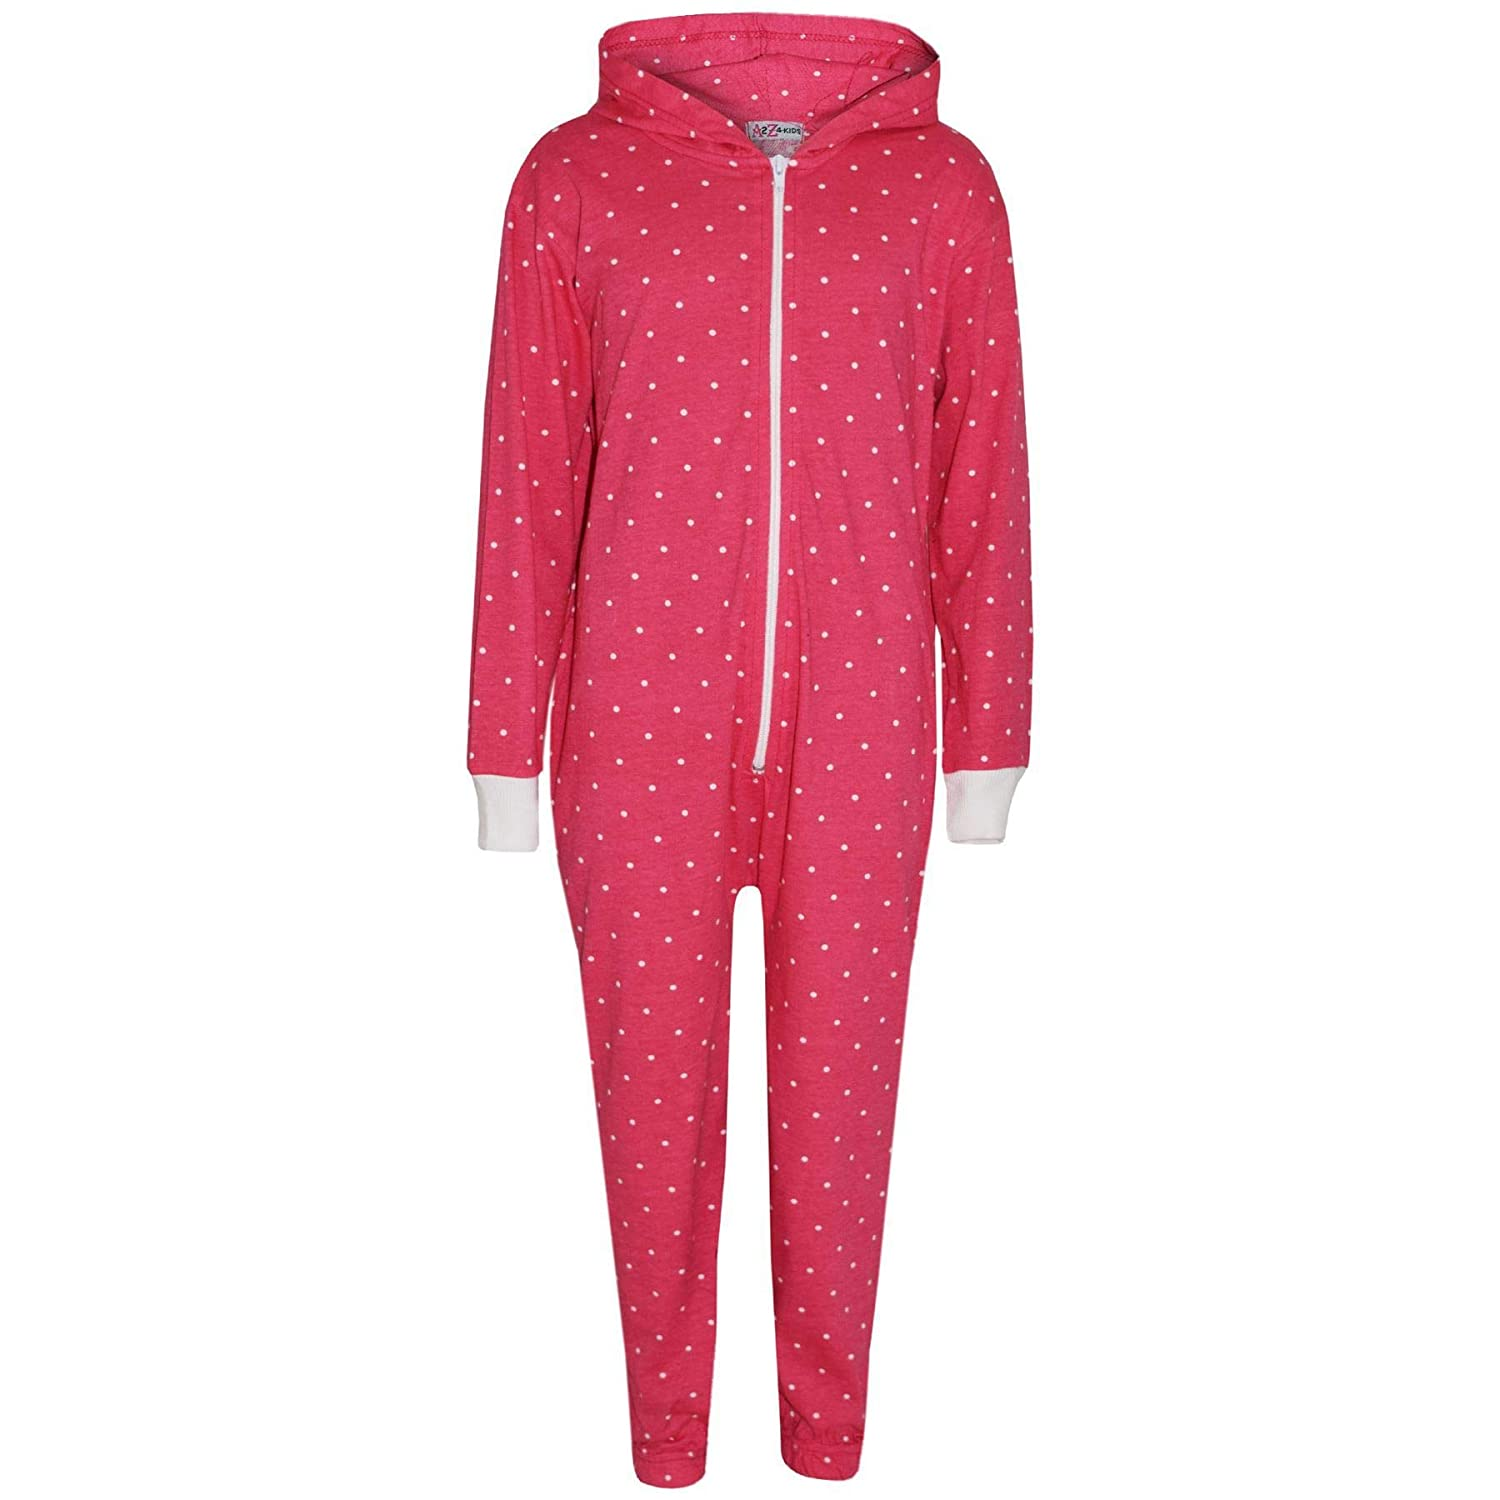 A2Z 4 Kids/® Kids Girls Onesie Designers Polka Dot Print Cotton Pink Hooded Onesie All in One Jumpsuit Playsuit New Age 2 3 4 5 6 7 8 9 10 11 12 13 Years